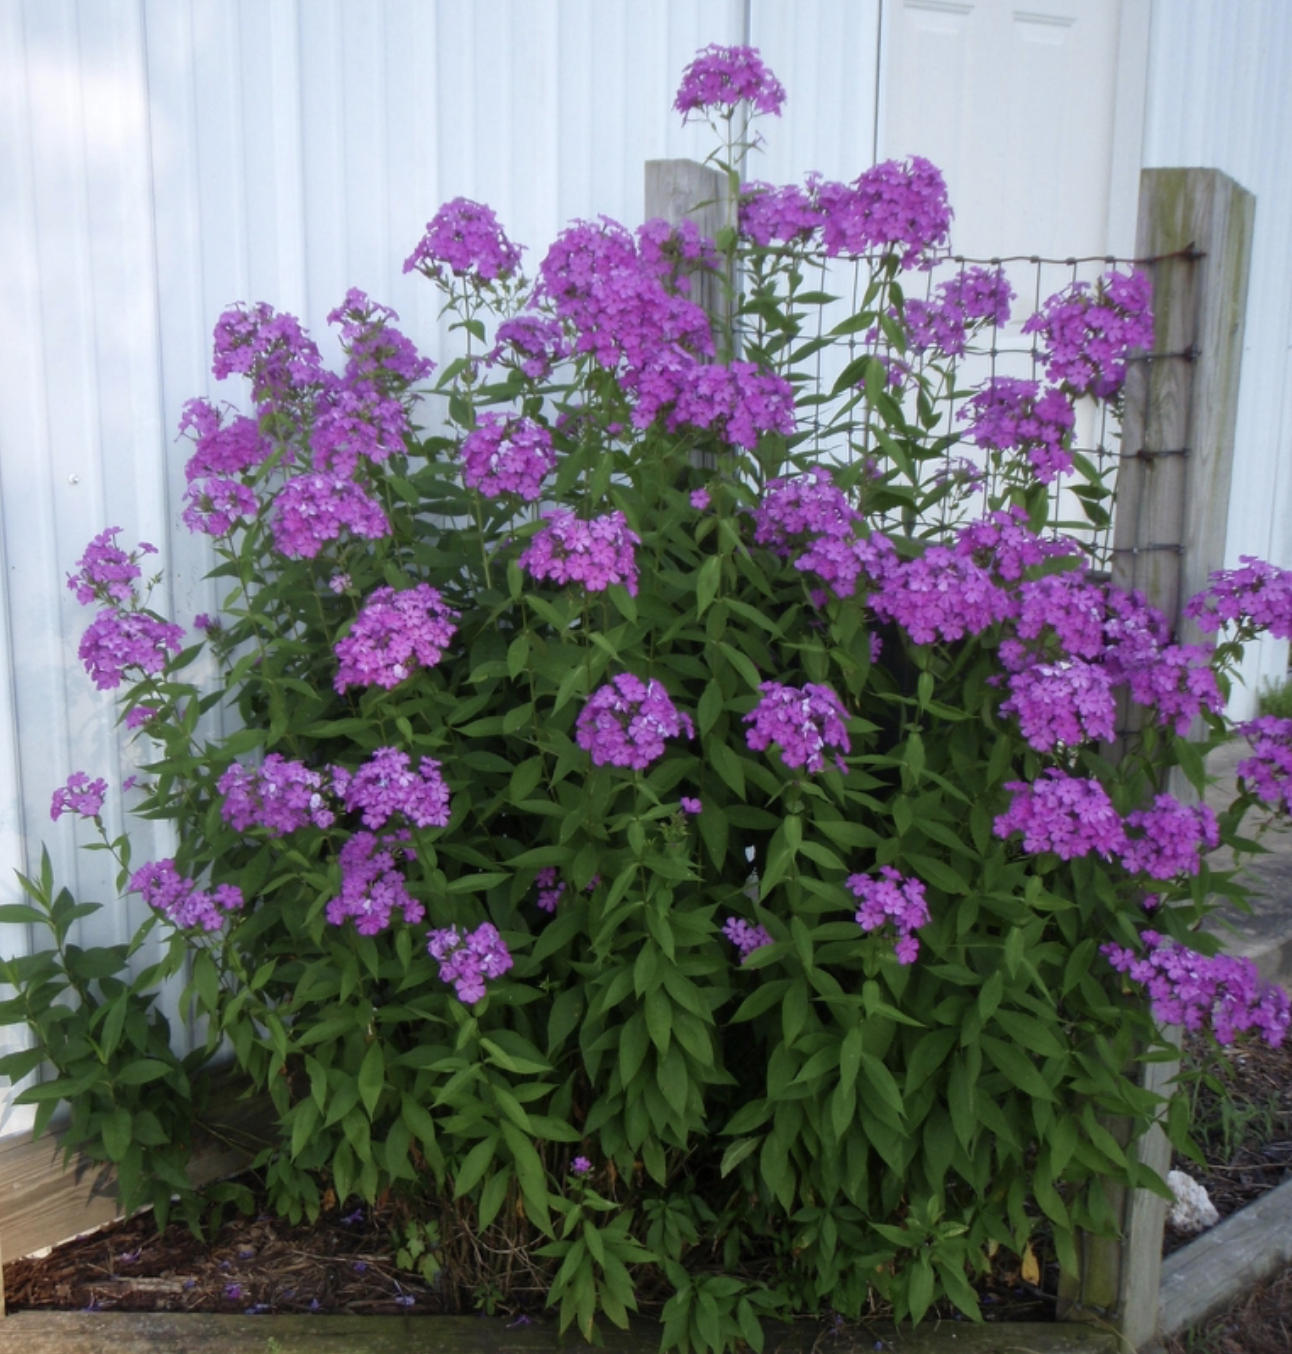 Phlox is easy to grow and you can cut stems for bunches indoors